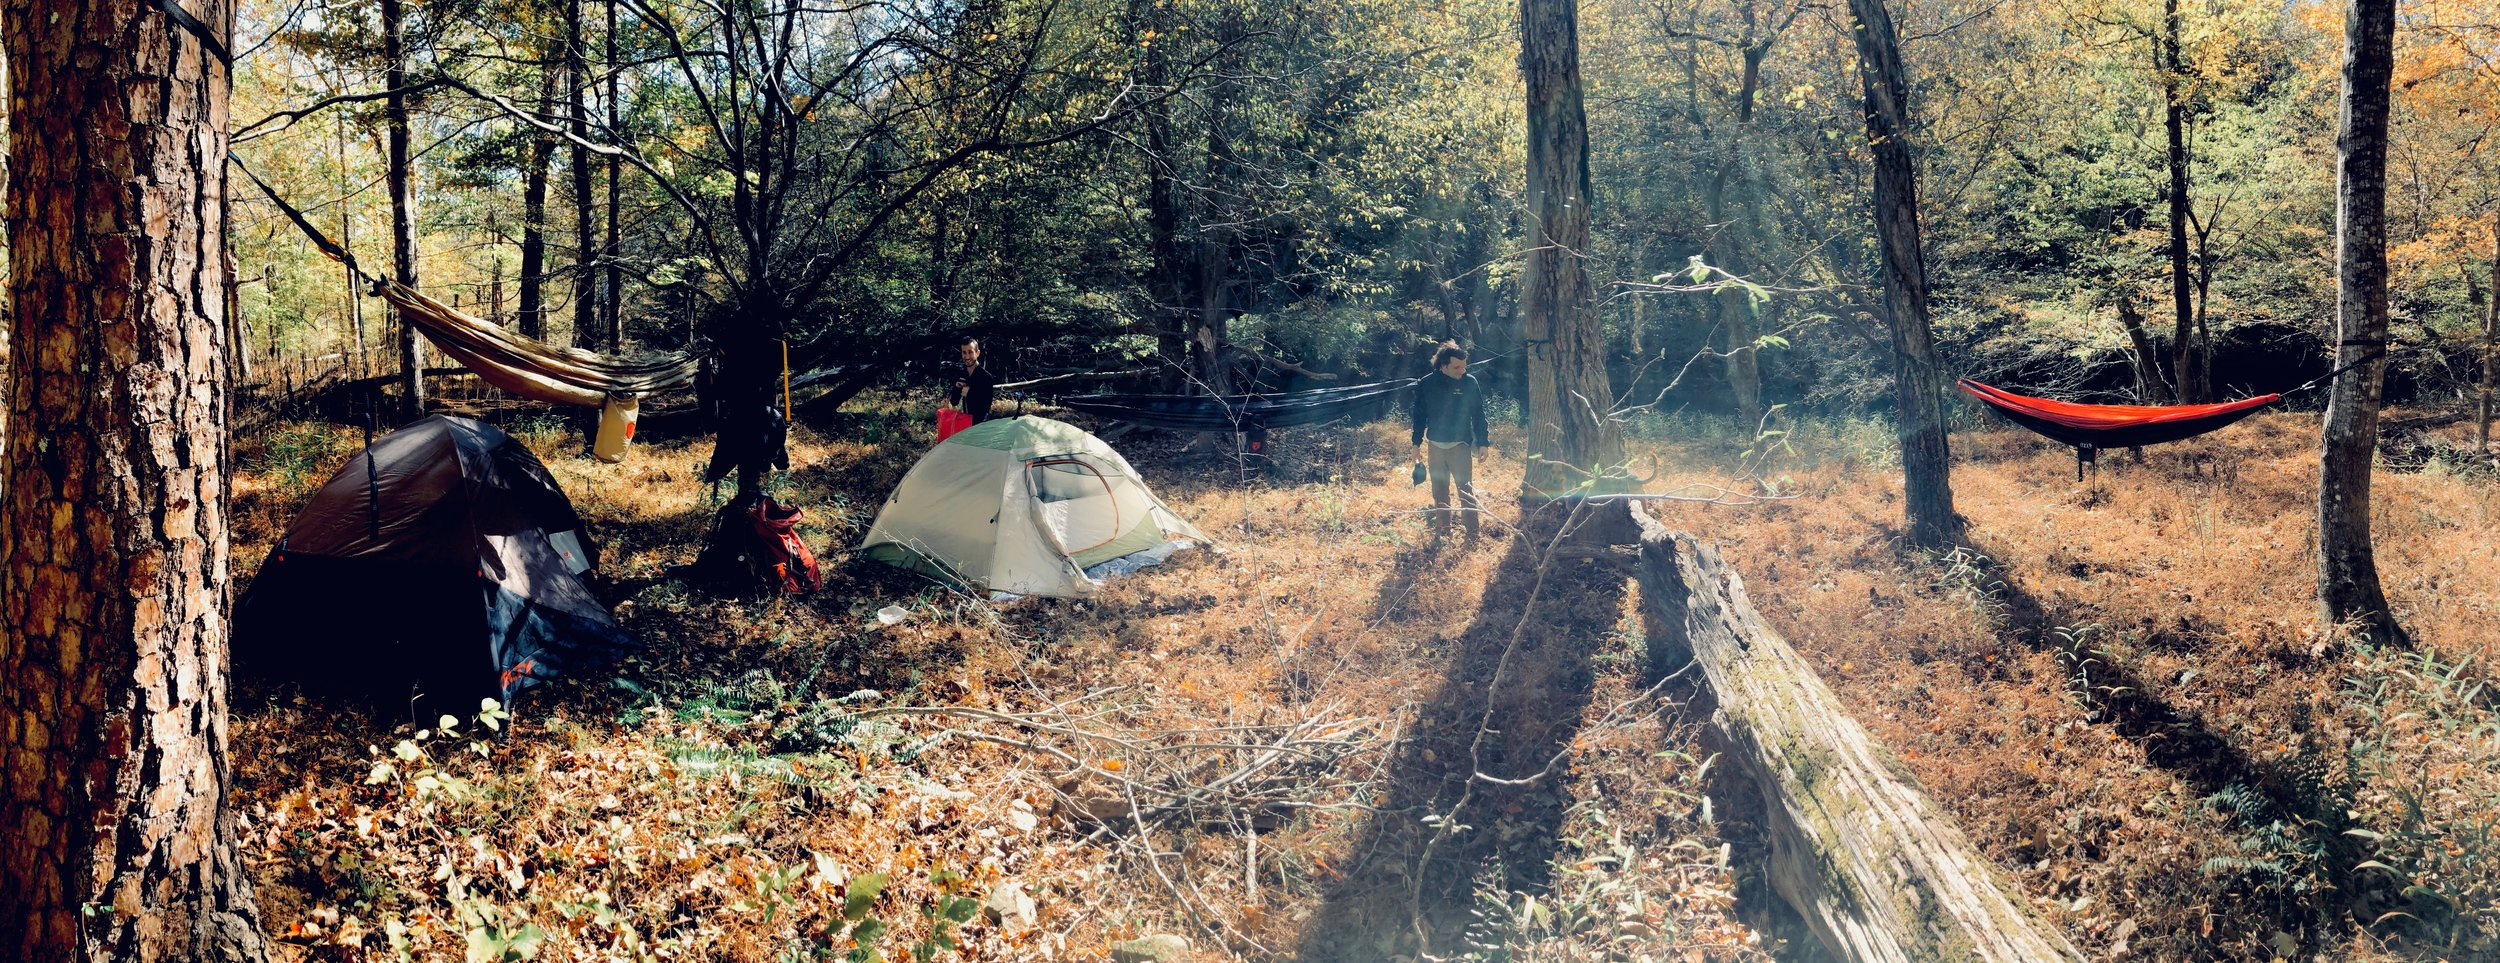 Check out this Eno River State Park camp site complete with Eno hammocks for sunshine relaxing.